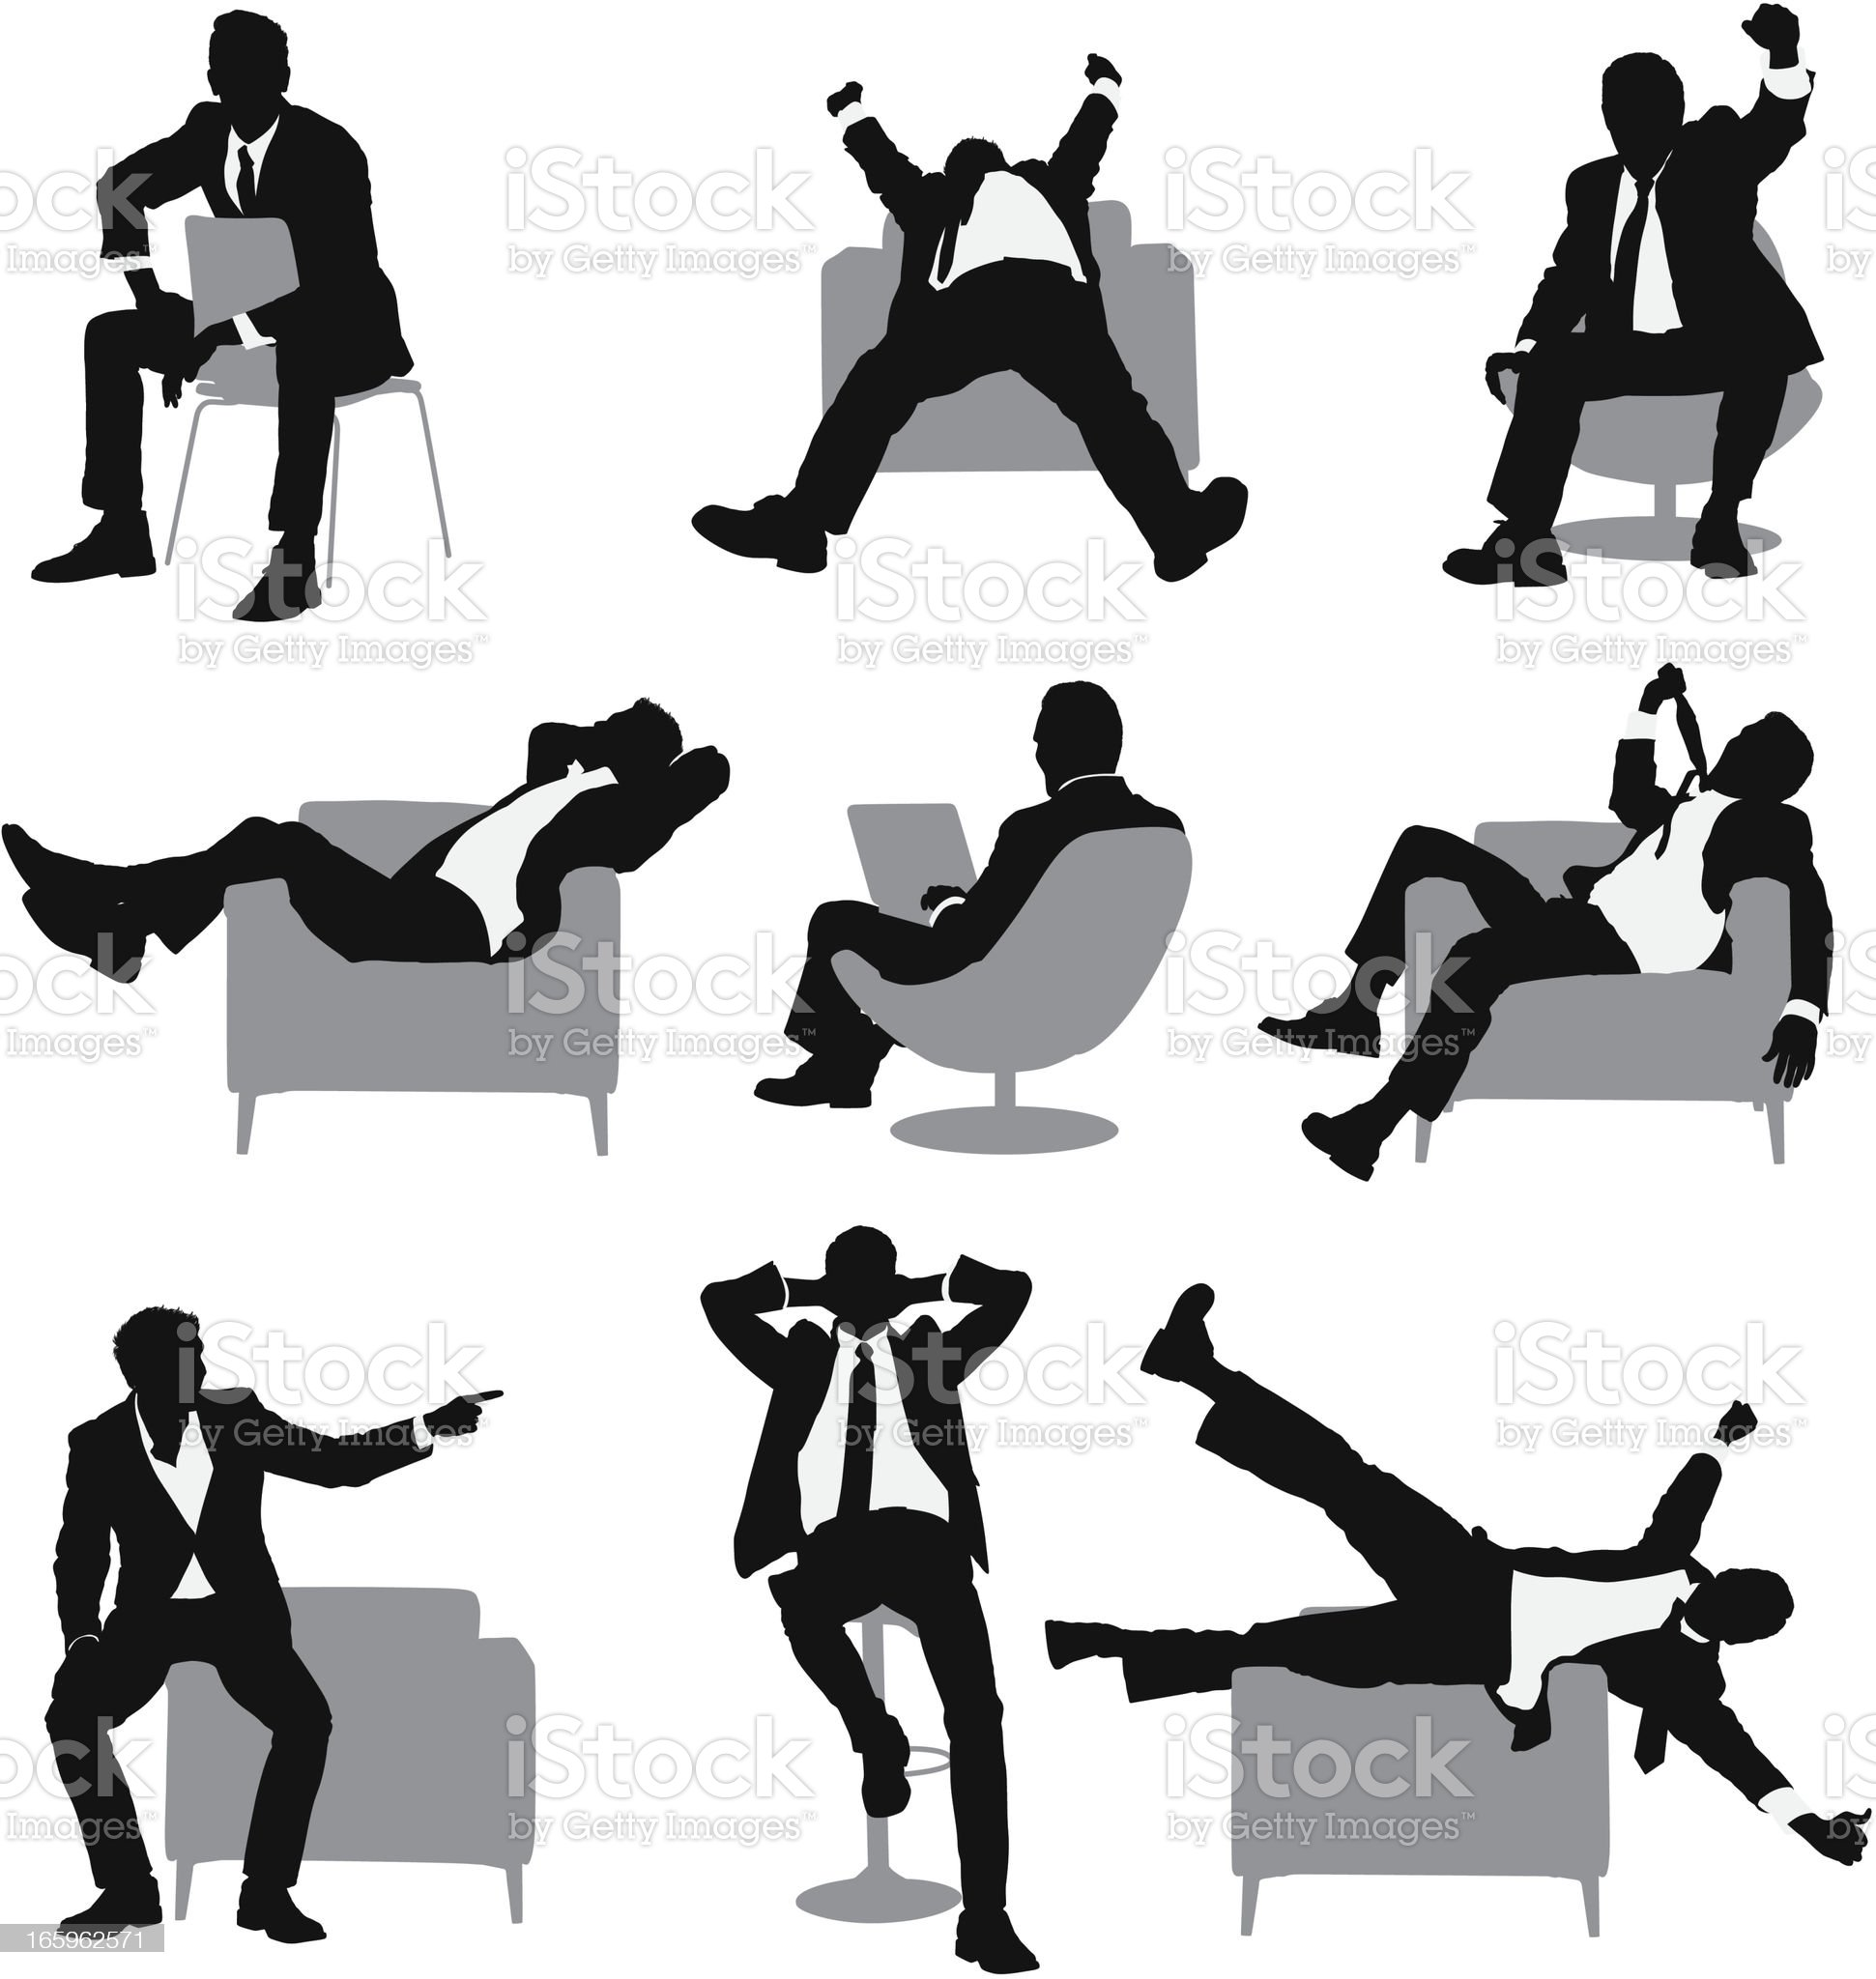 Multiple images of a businessman in different poses royalty-free stock vector art